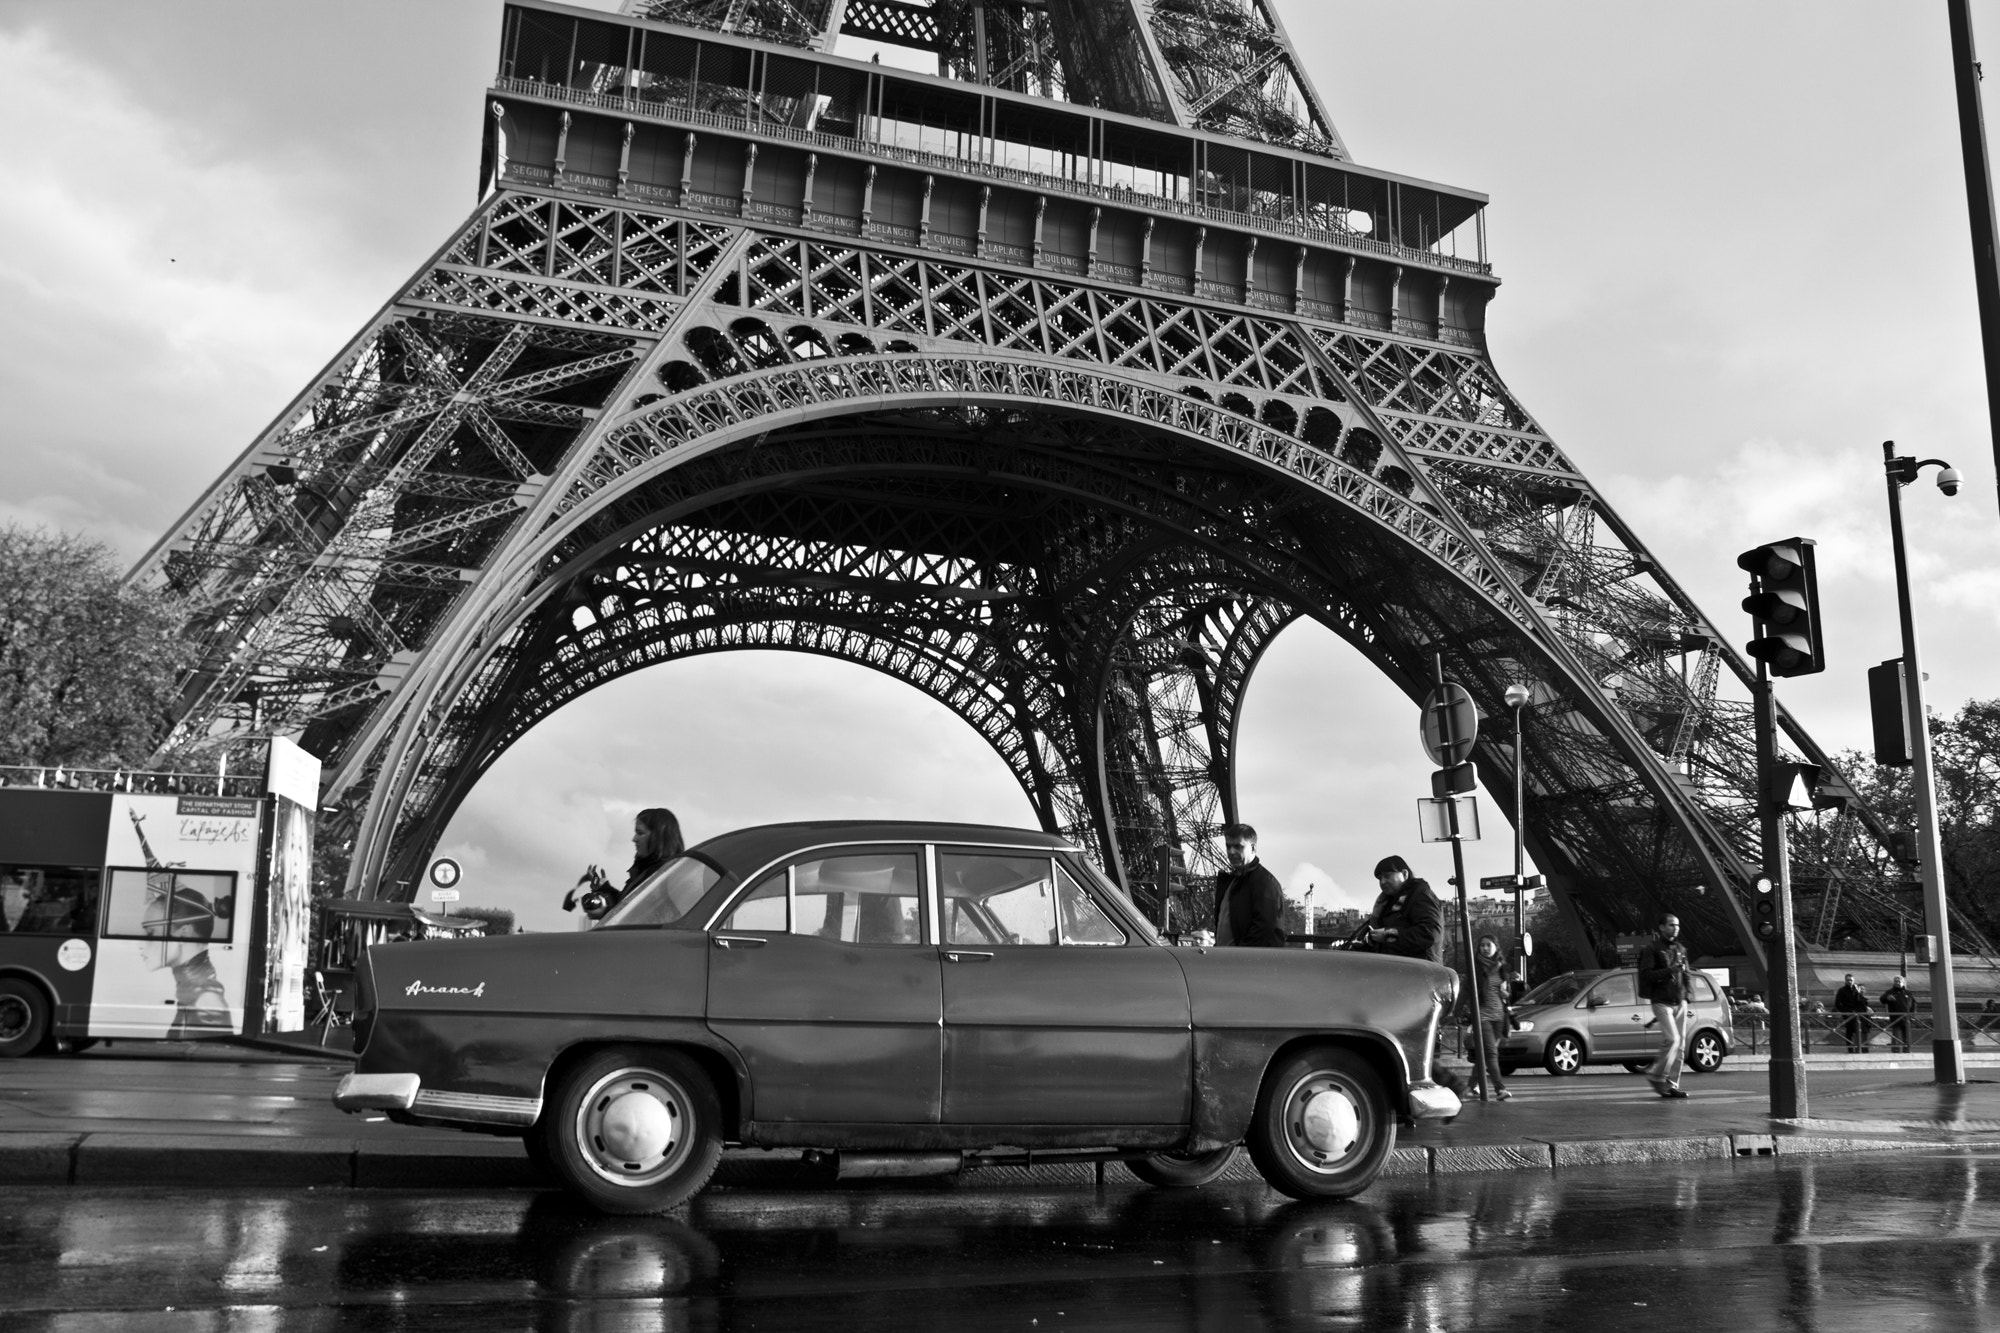 Photograph Old car in Eiffel Tower by VuThéara Kham on 500px